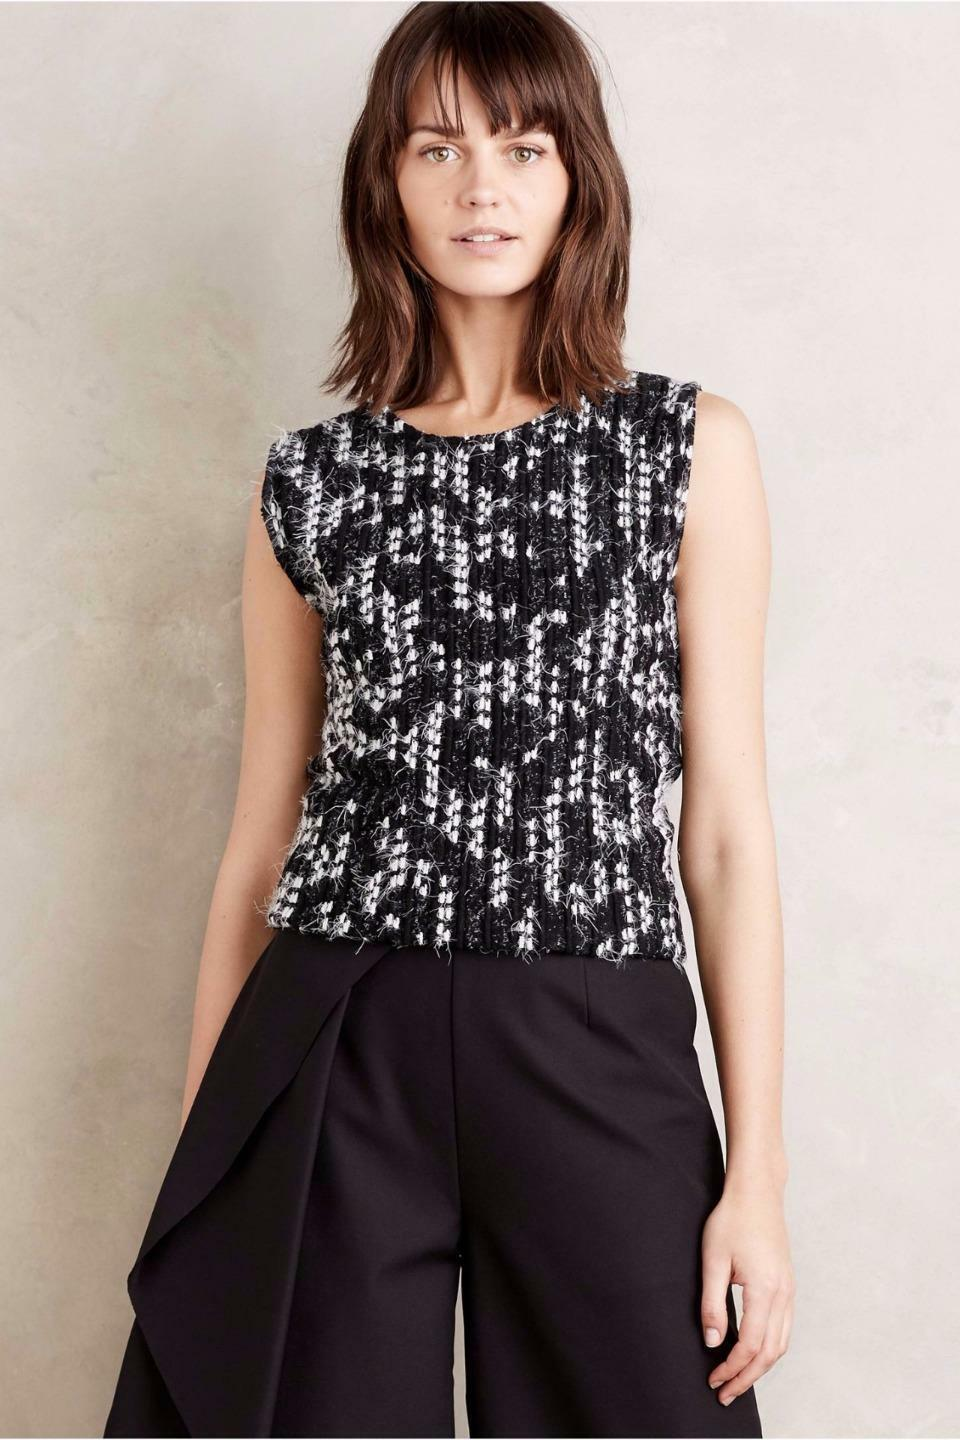 NIP Anthropologie  Arroyo Shell by Dolan Left Coast, M, Sweater front look Shell